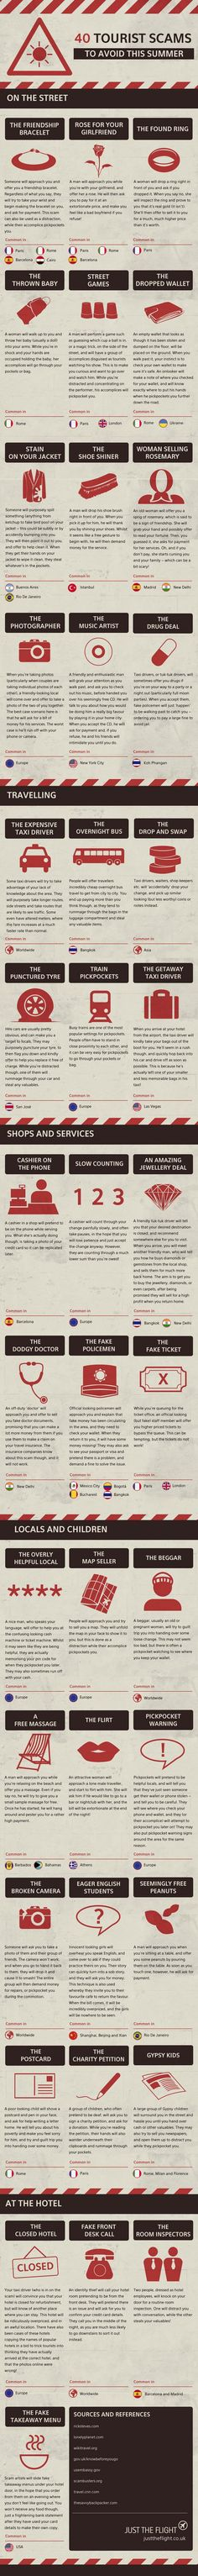 Infographic Alert: 40 Travel Scams to Avoid, Country by Country || Jaunted